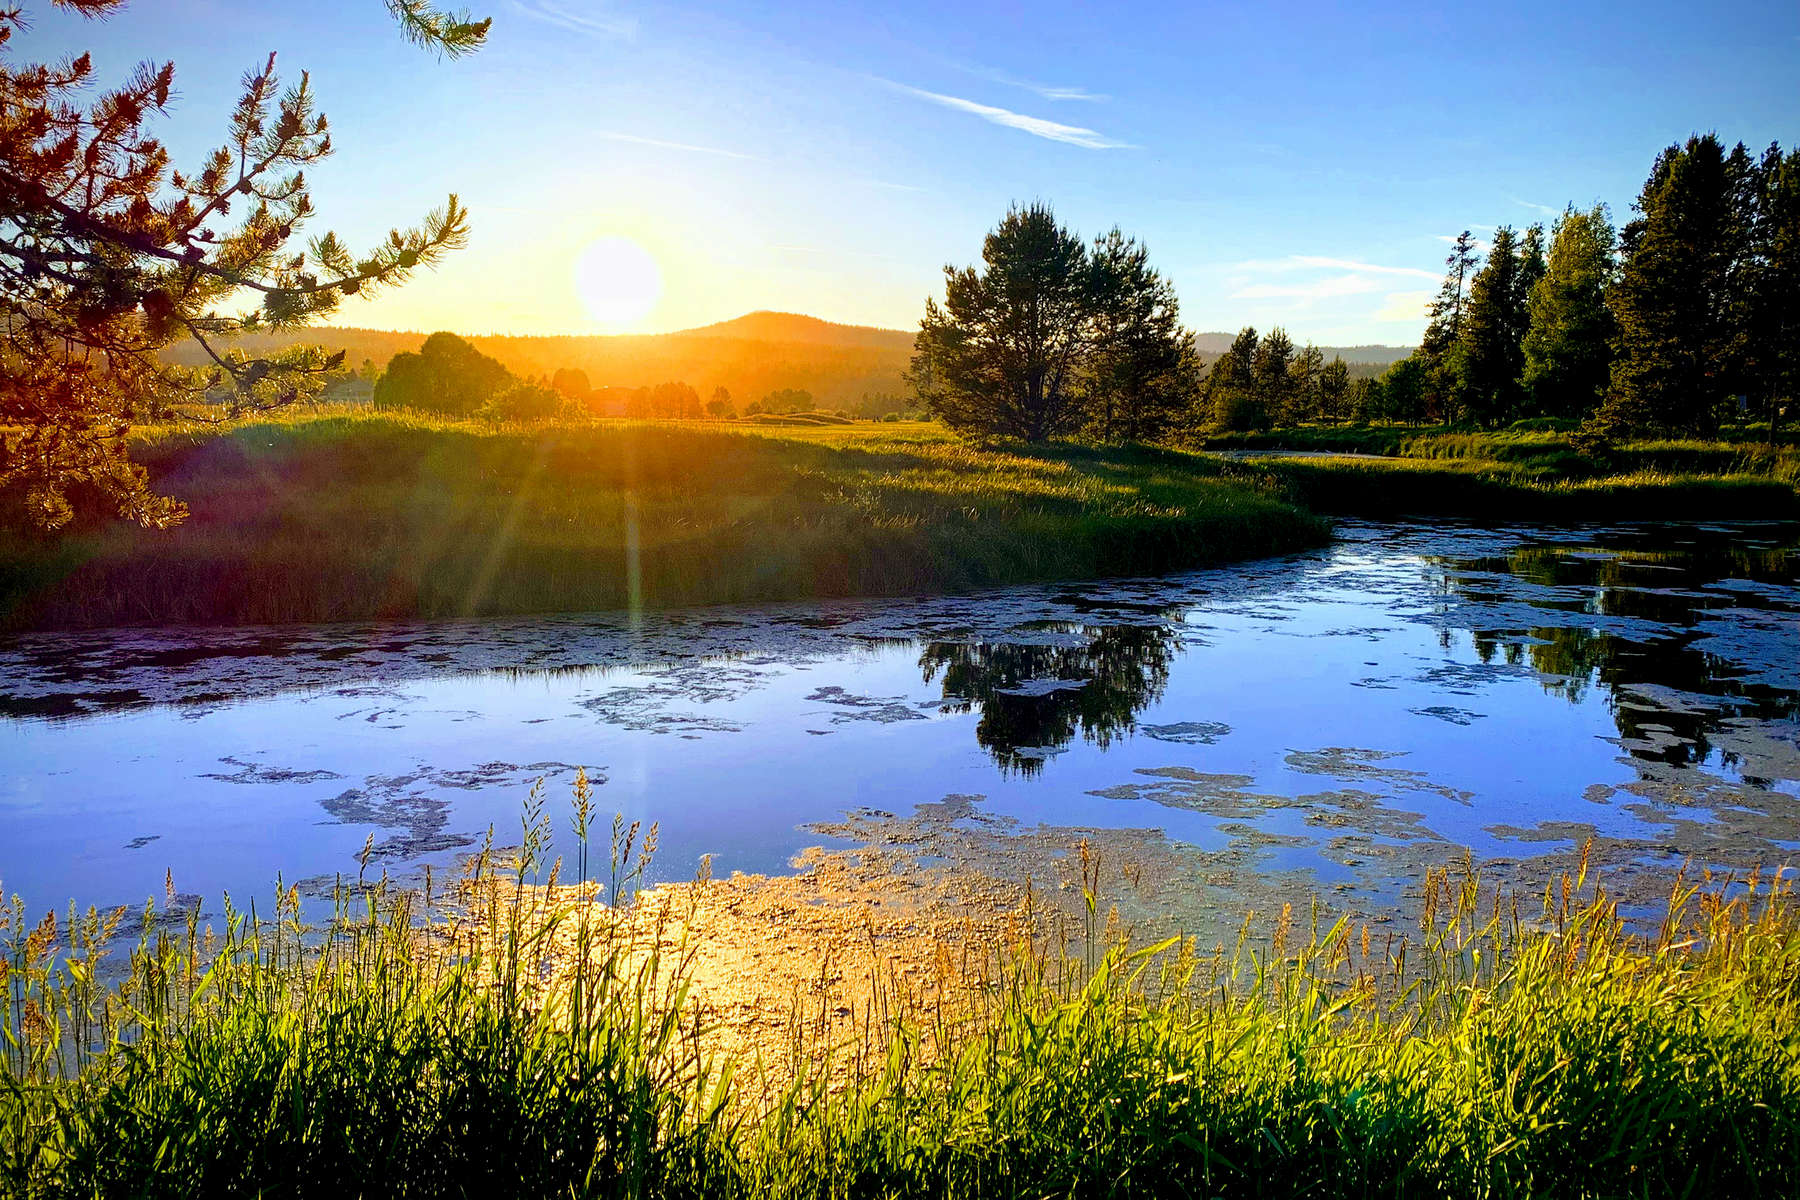 Sunset-over-Golf-Course-Pond-4x6-2